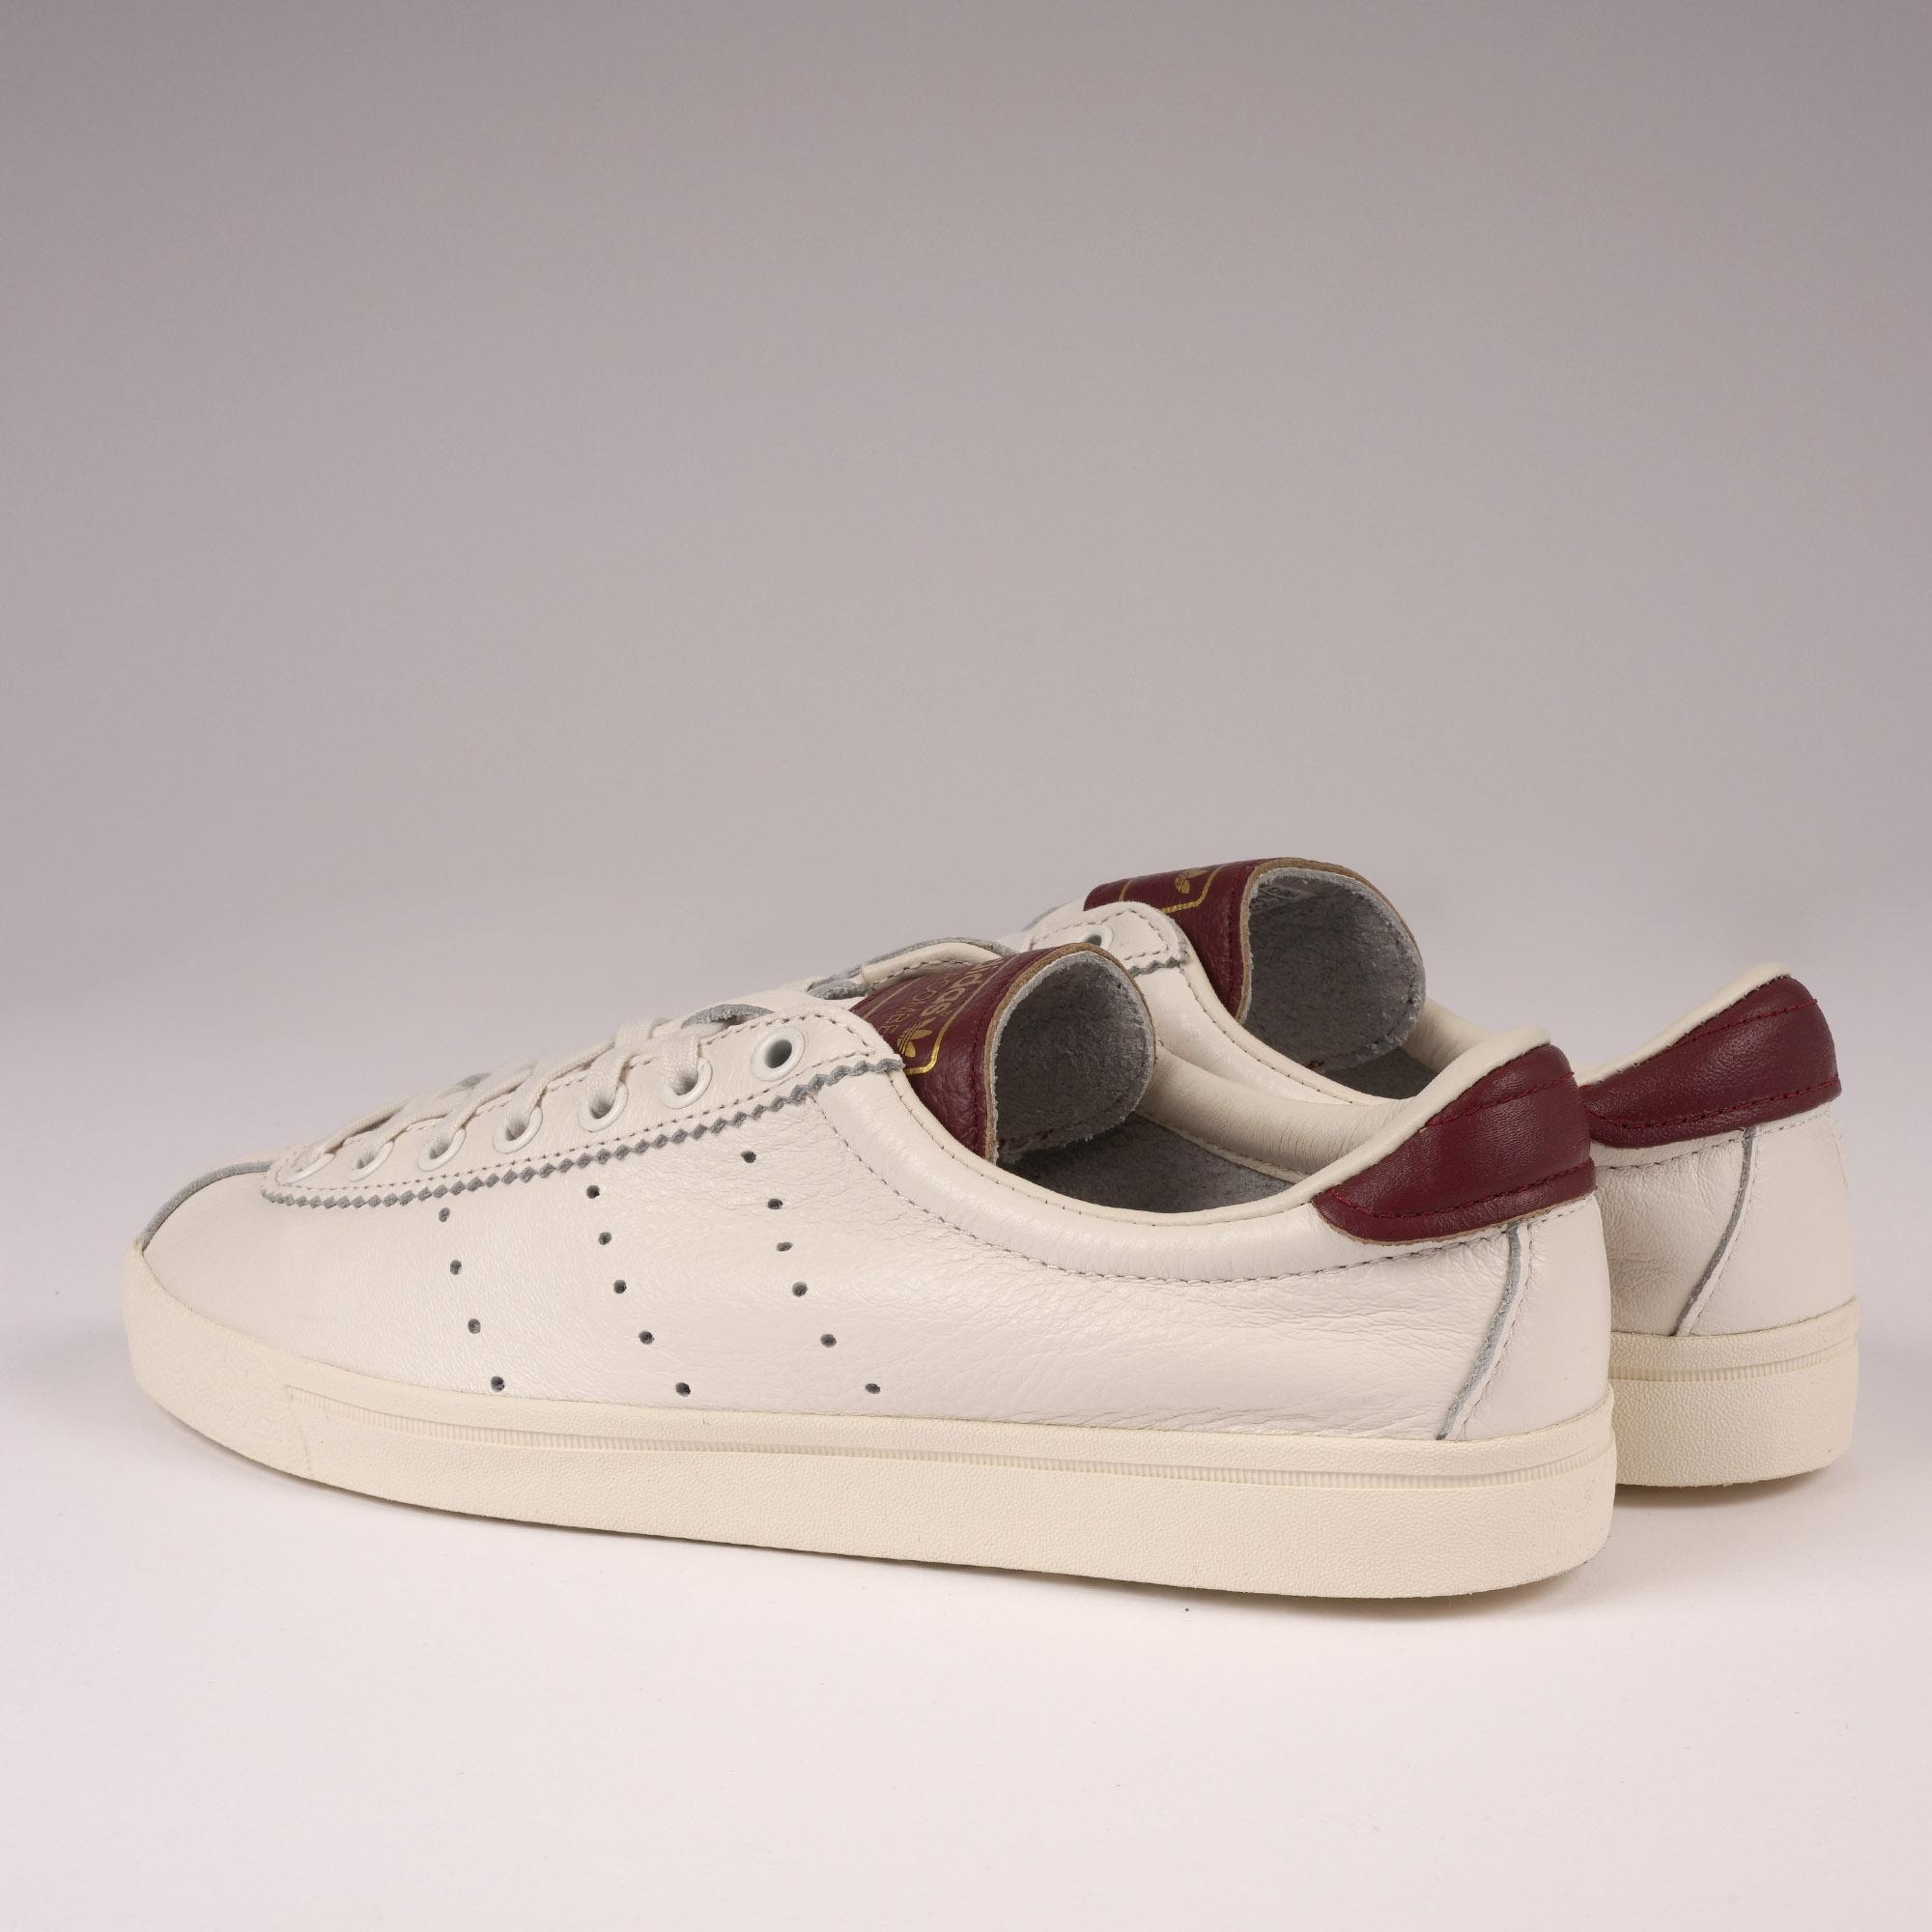 577ce6fd7767 Lyst - adidas Originals Lacombe - Cloud White